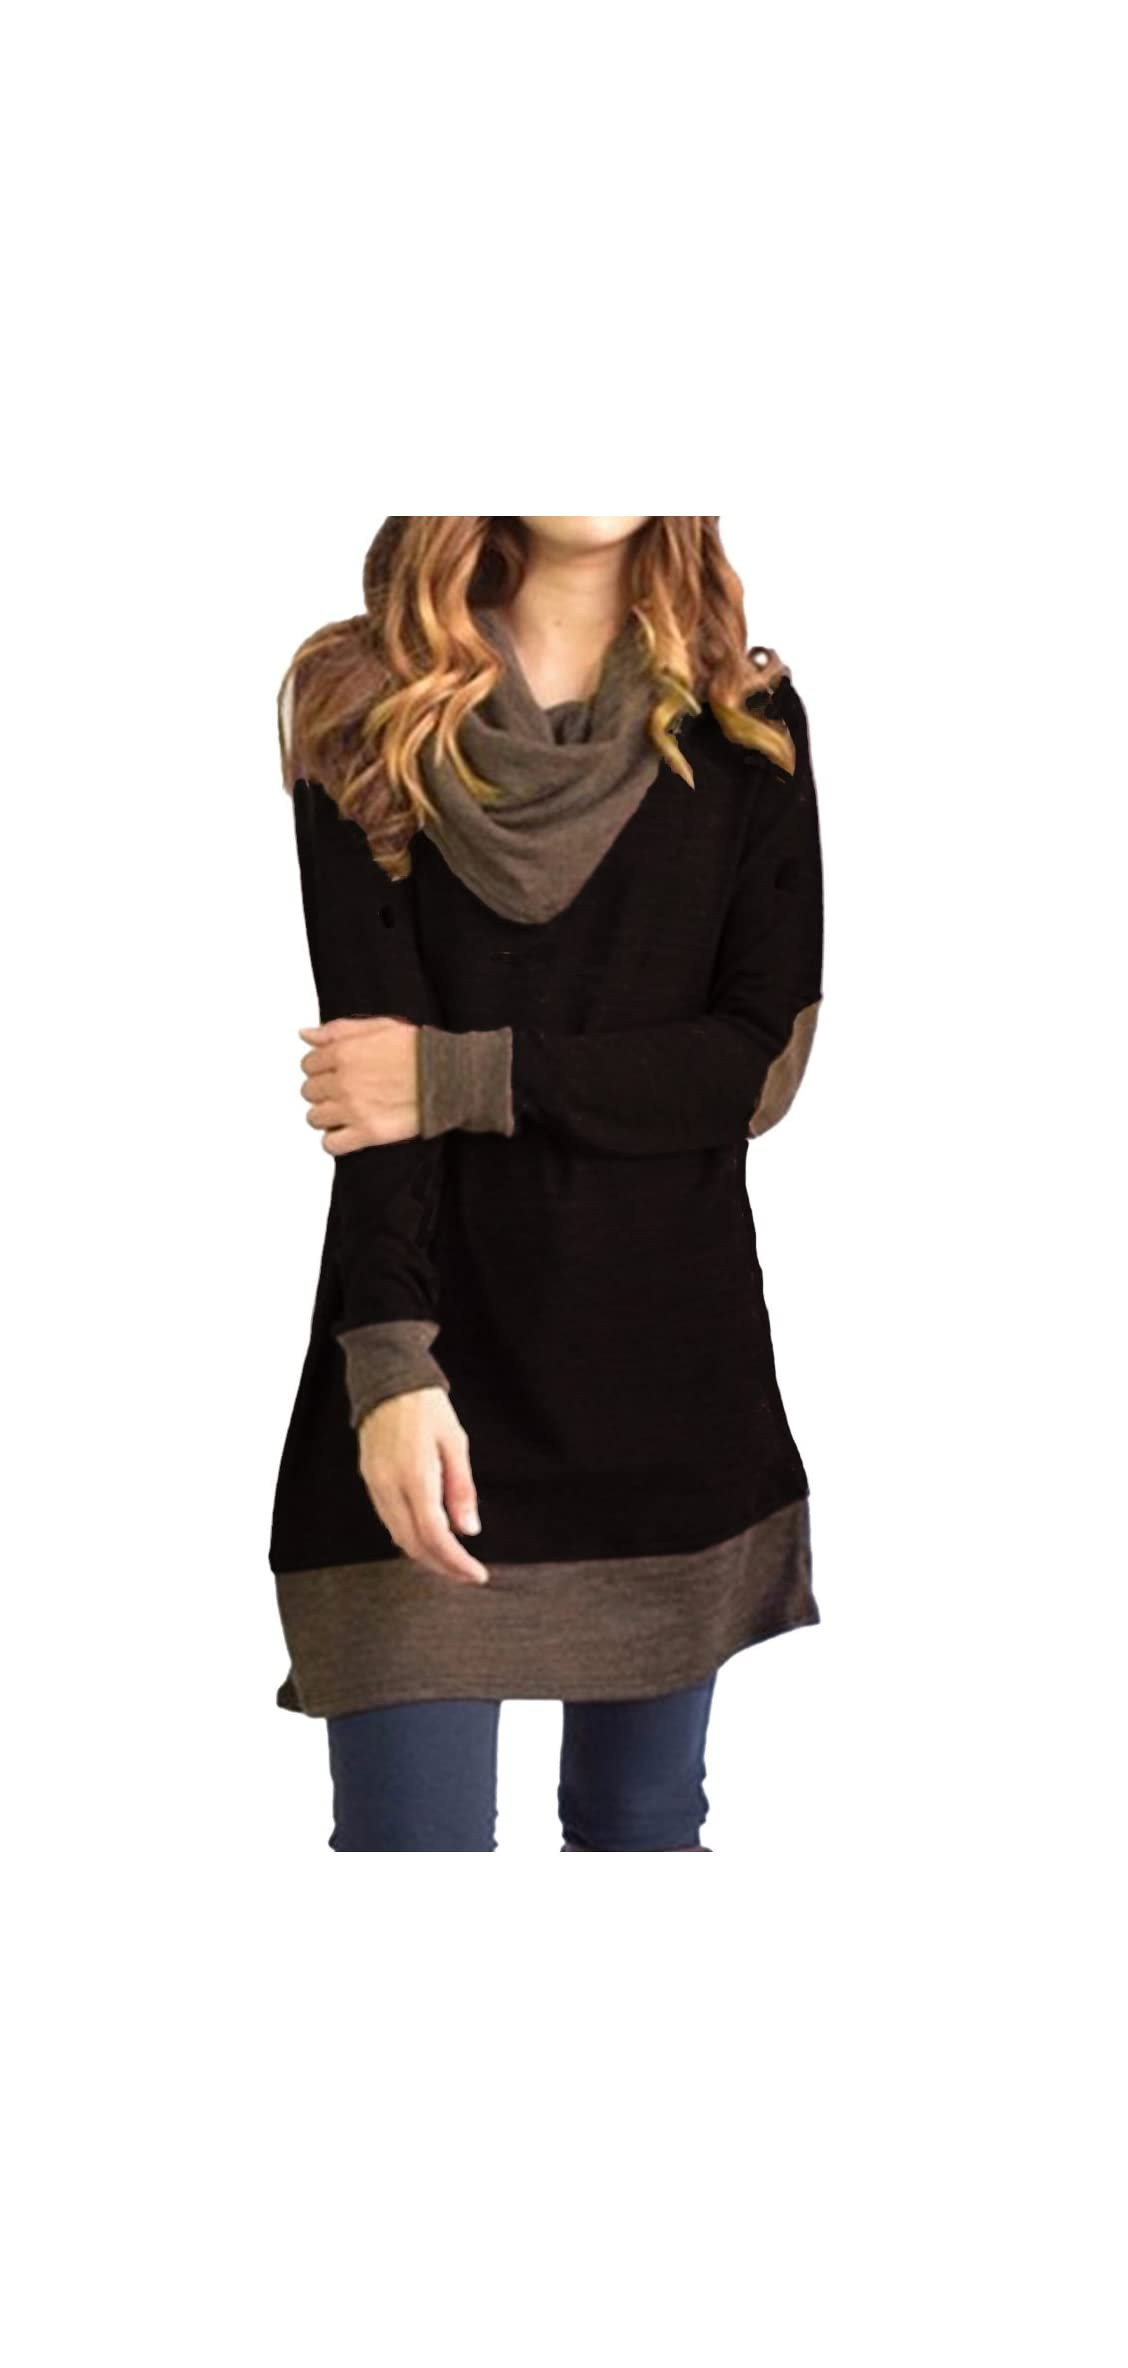 Women's Cowl Neck Tops Two Tone Color Block Pullovers